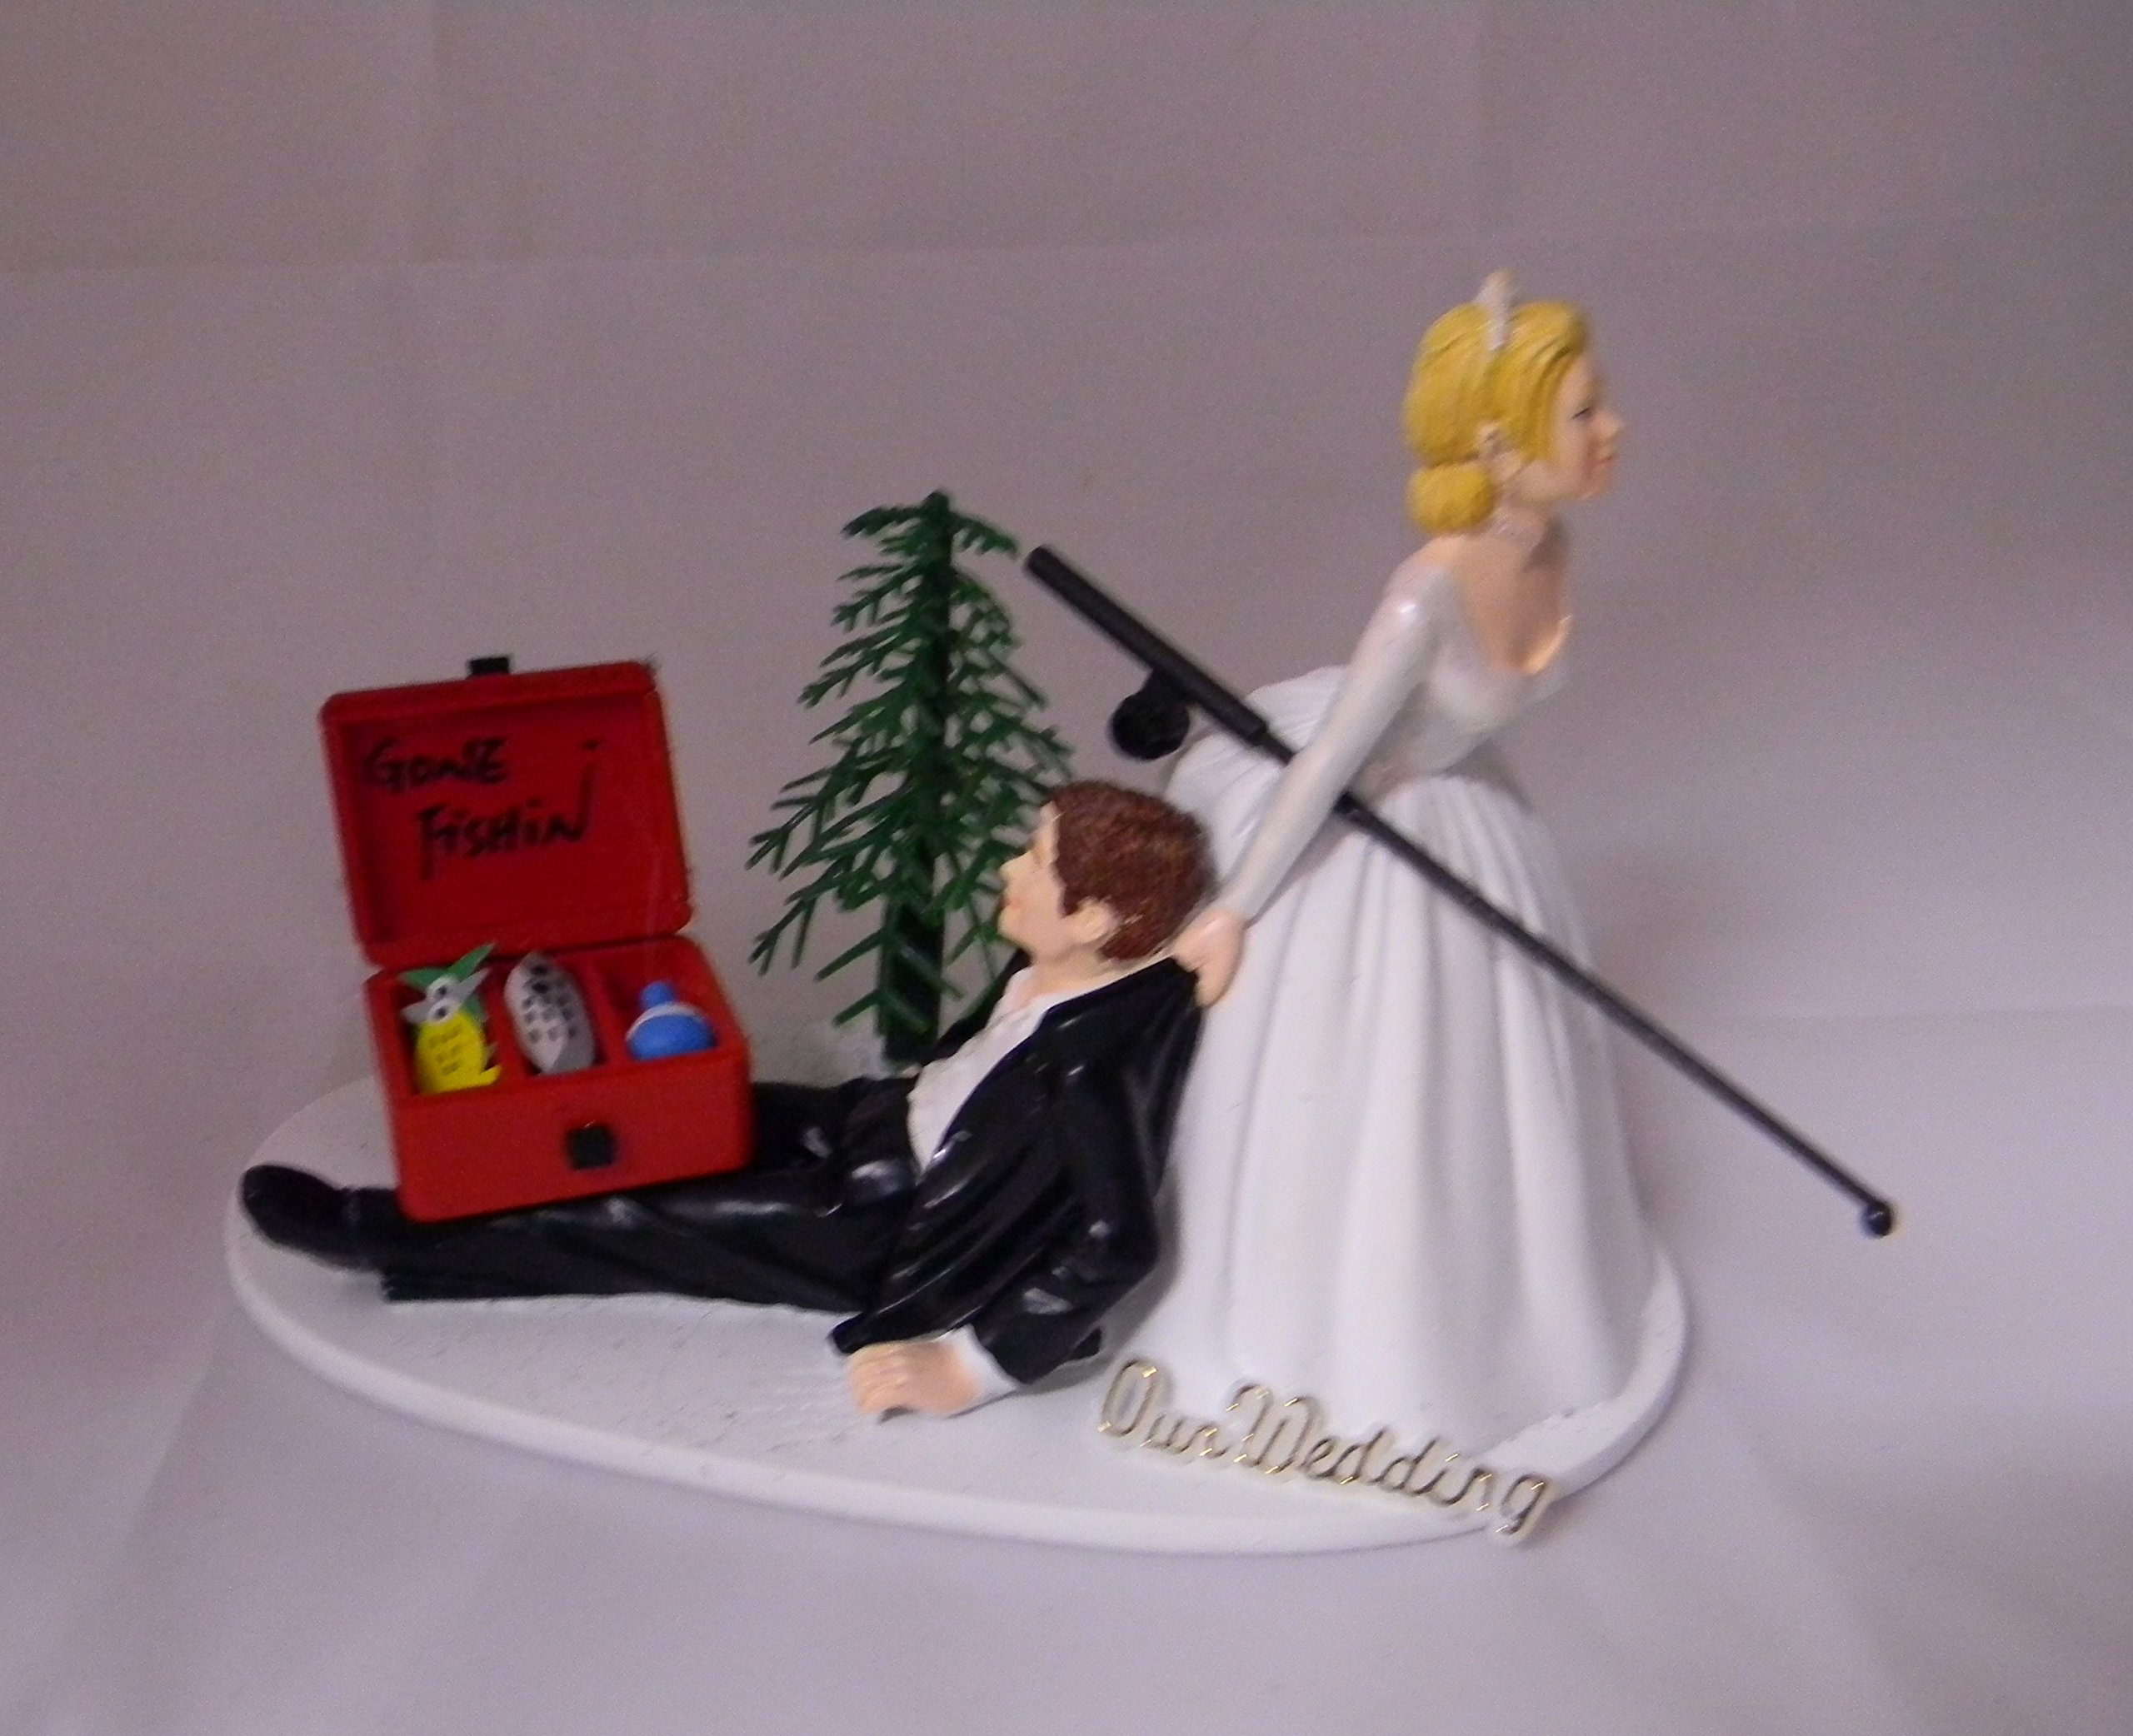 Wedding Reception Ceremony Party Fishing sign Pole Tackle Cake Topper